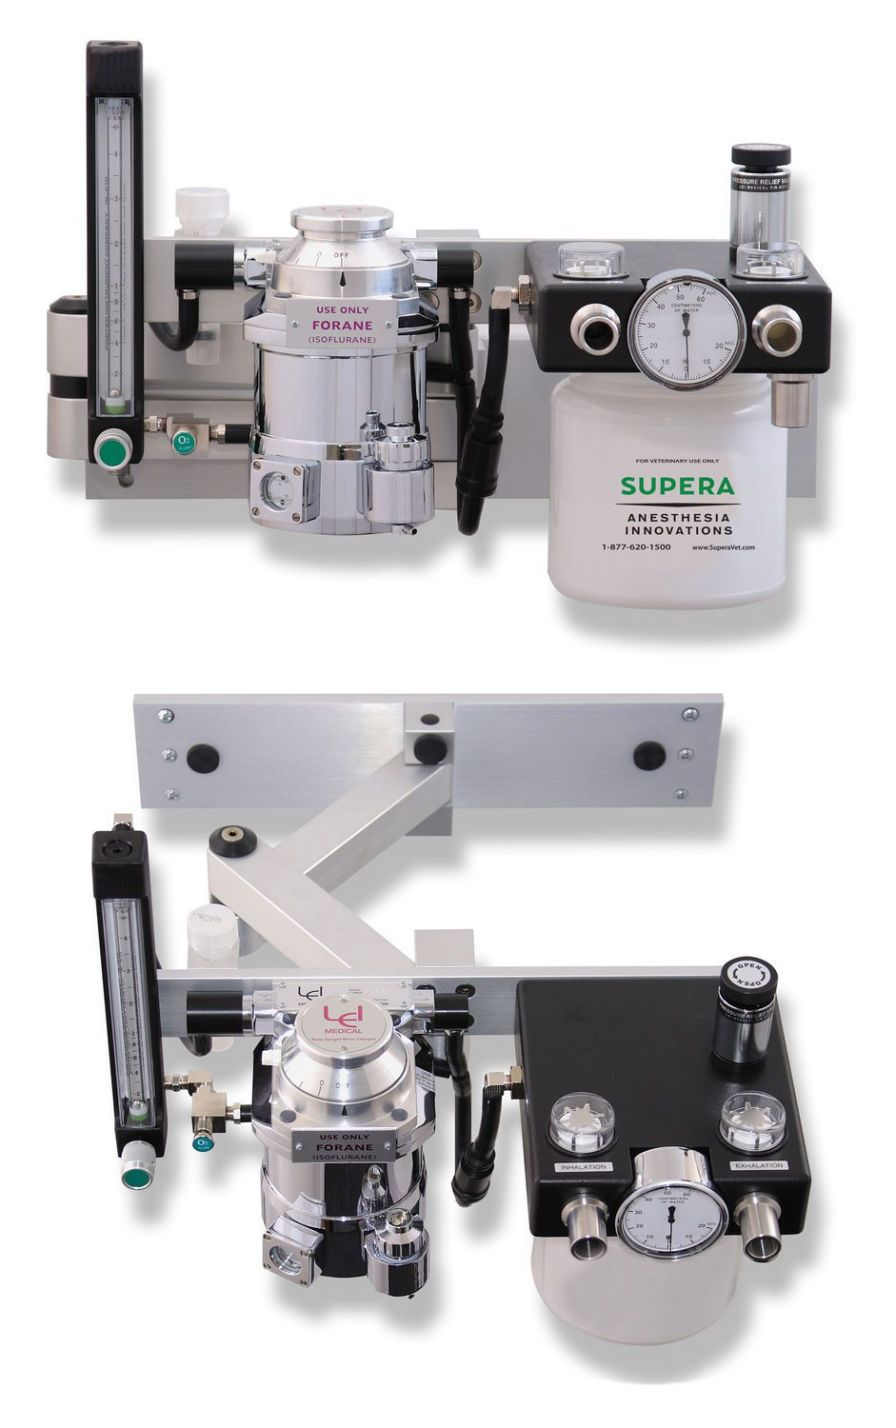 Veterinary anesthesia workstation / wall-mounted M2500 Supera Anesthesia Innovations